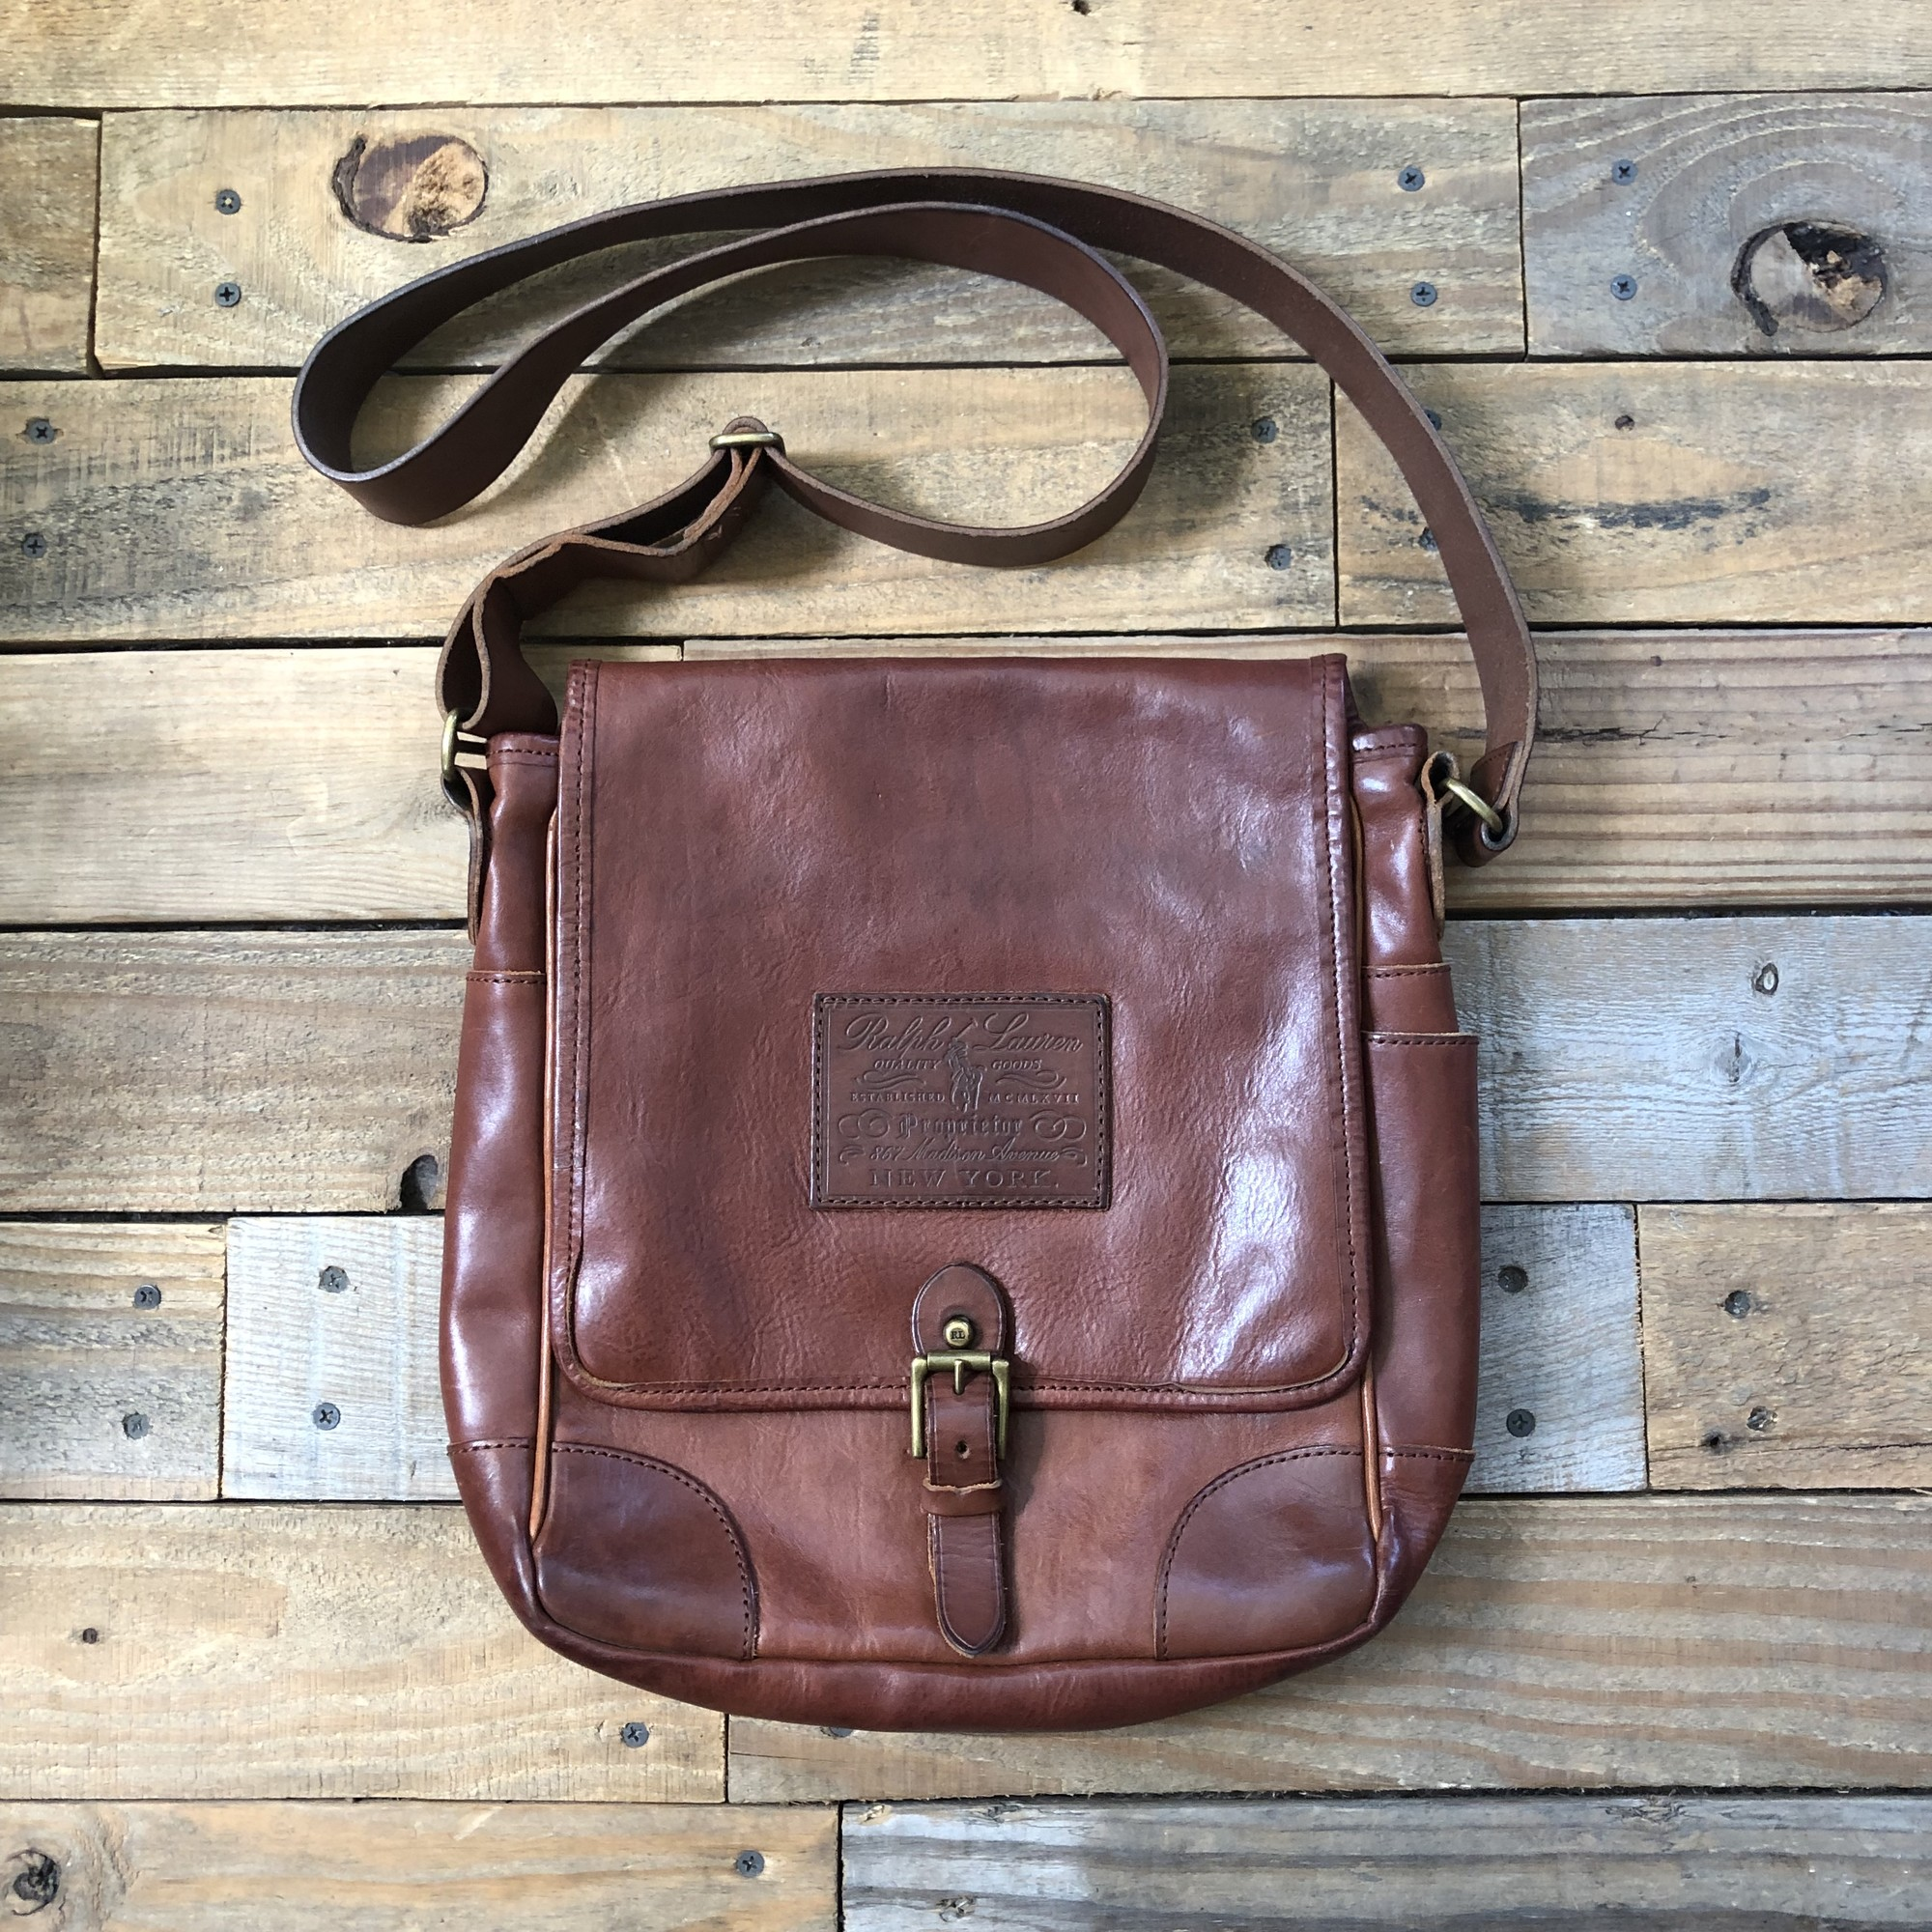 "Ralph Lauren Leather Messenger Bag<br /> Color: Brown<br /> Size: 10"" x 11"" x 2.5""<br /> <br /> Features:<br /> -flap with buckle closure<br /> -adjustable leather crossbody/shoulder strap<br /> -exterior zippered pocket<br /> -interior zippered pocket<br /> -two interior pockets"